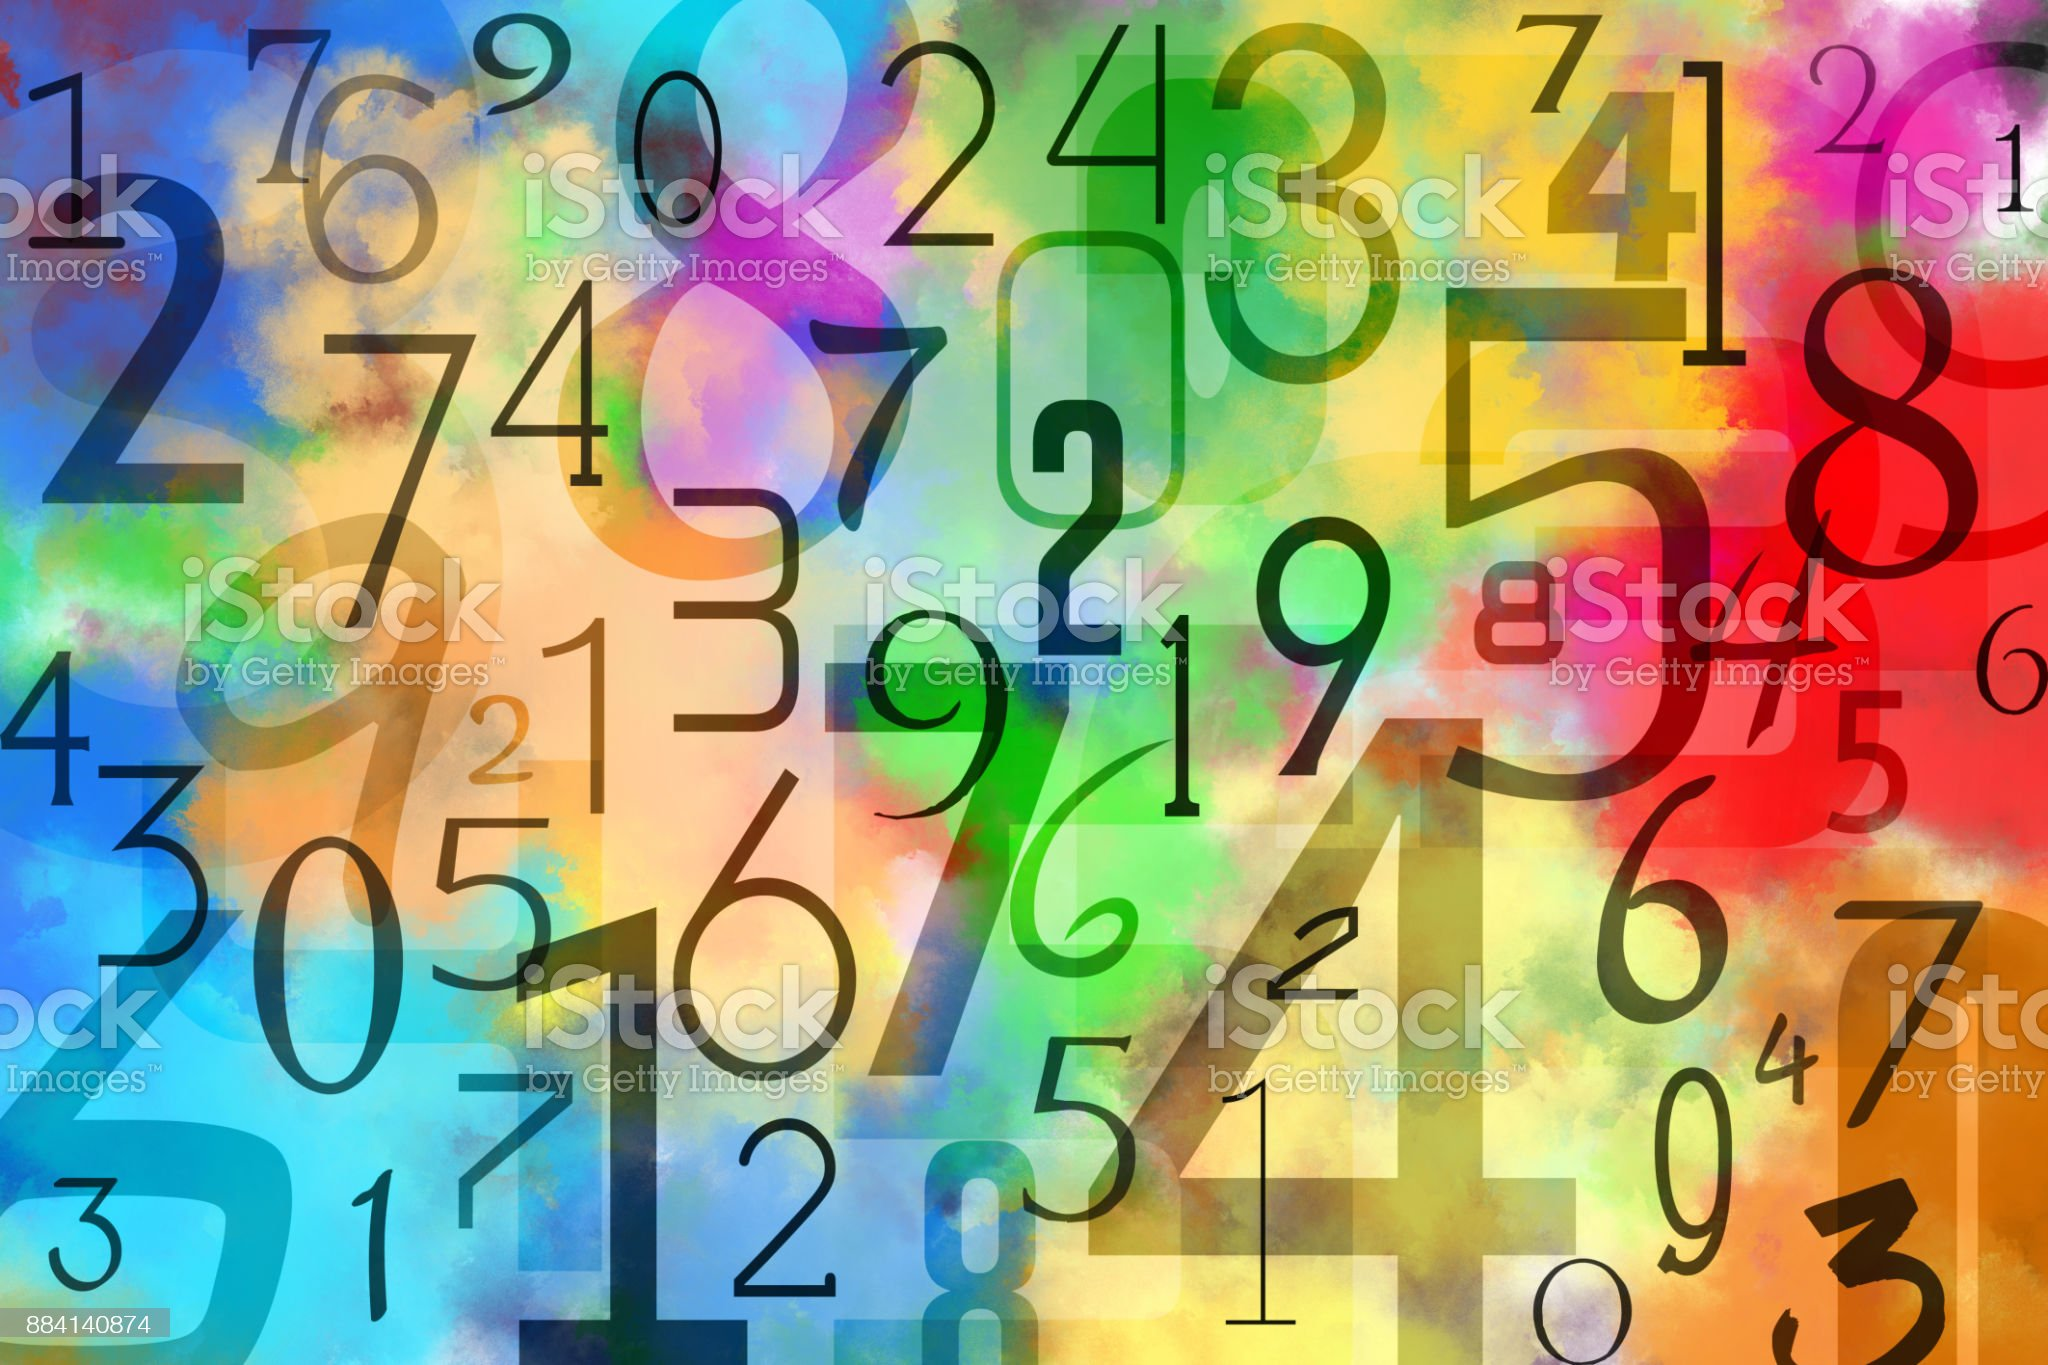 Colorful numbers background Pattern obtained by superimposing black numbers on multicolored background. This is obtained by multiple colors paint watercolor technique on paper. Number Stock Photo